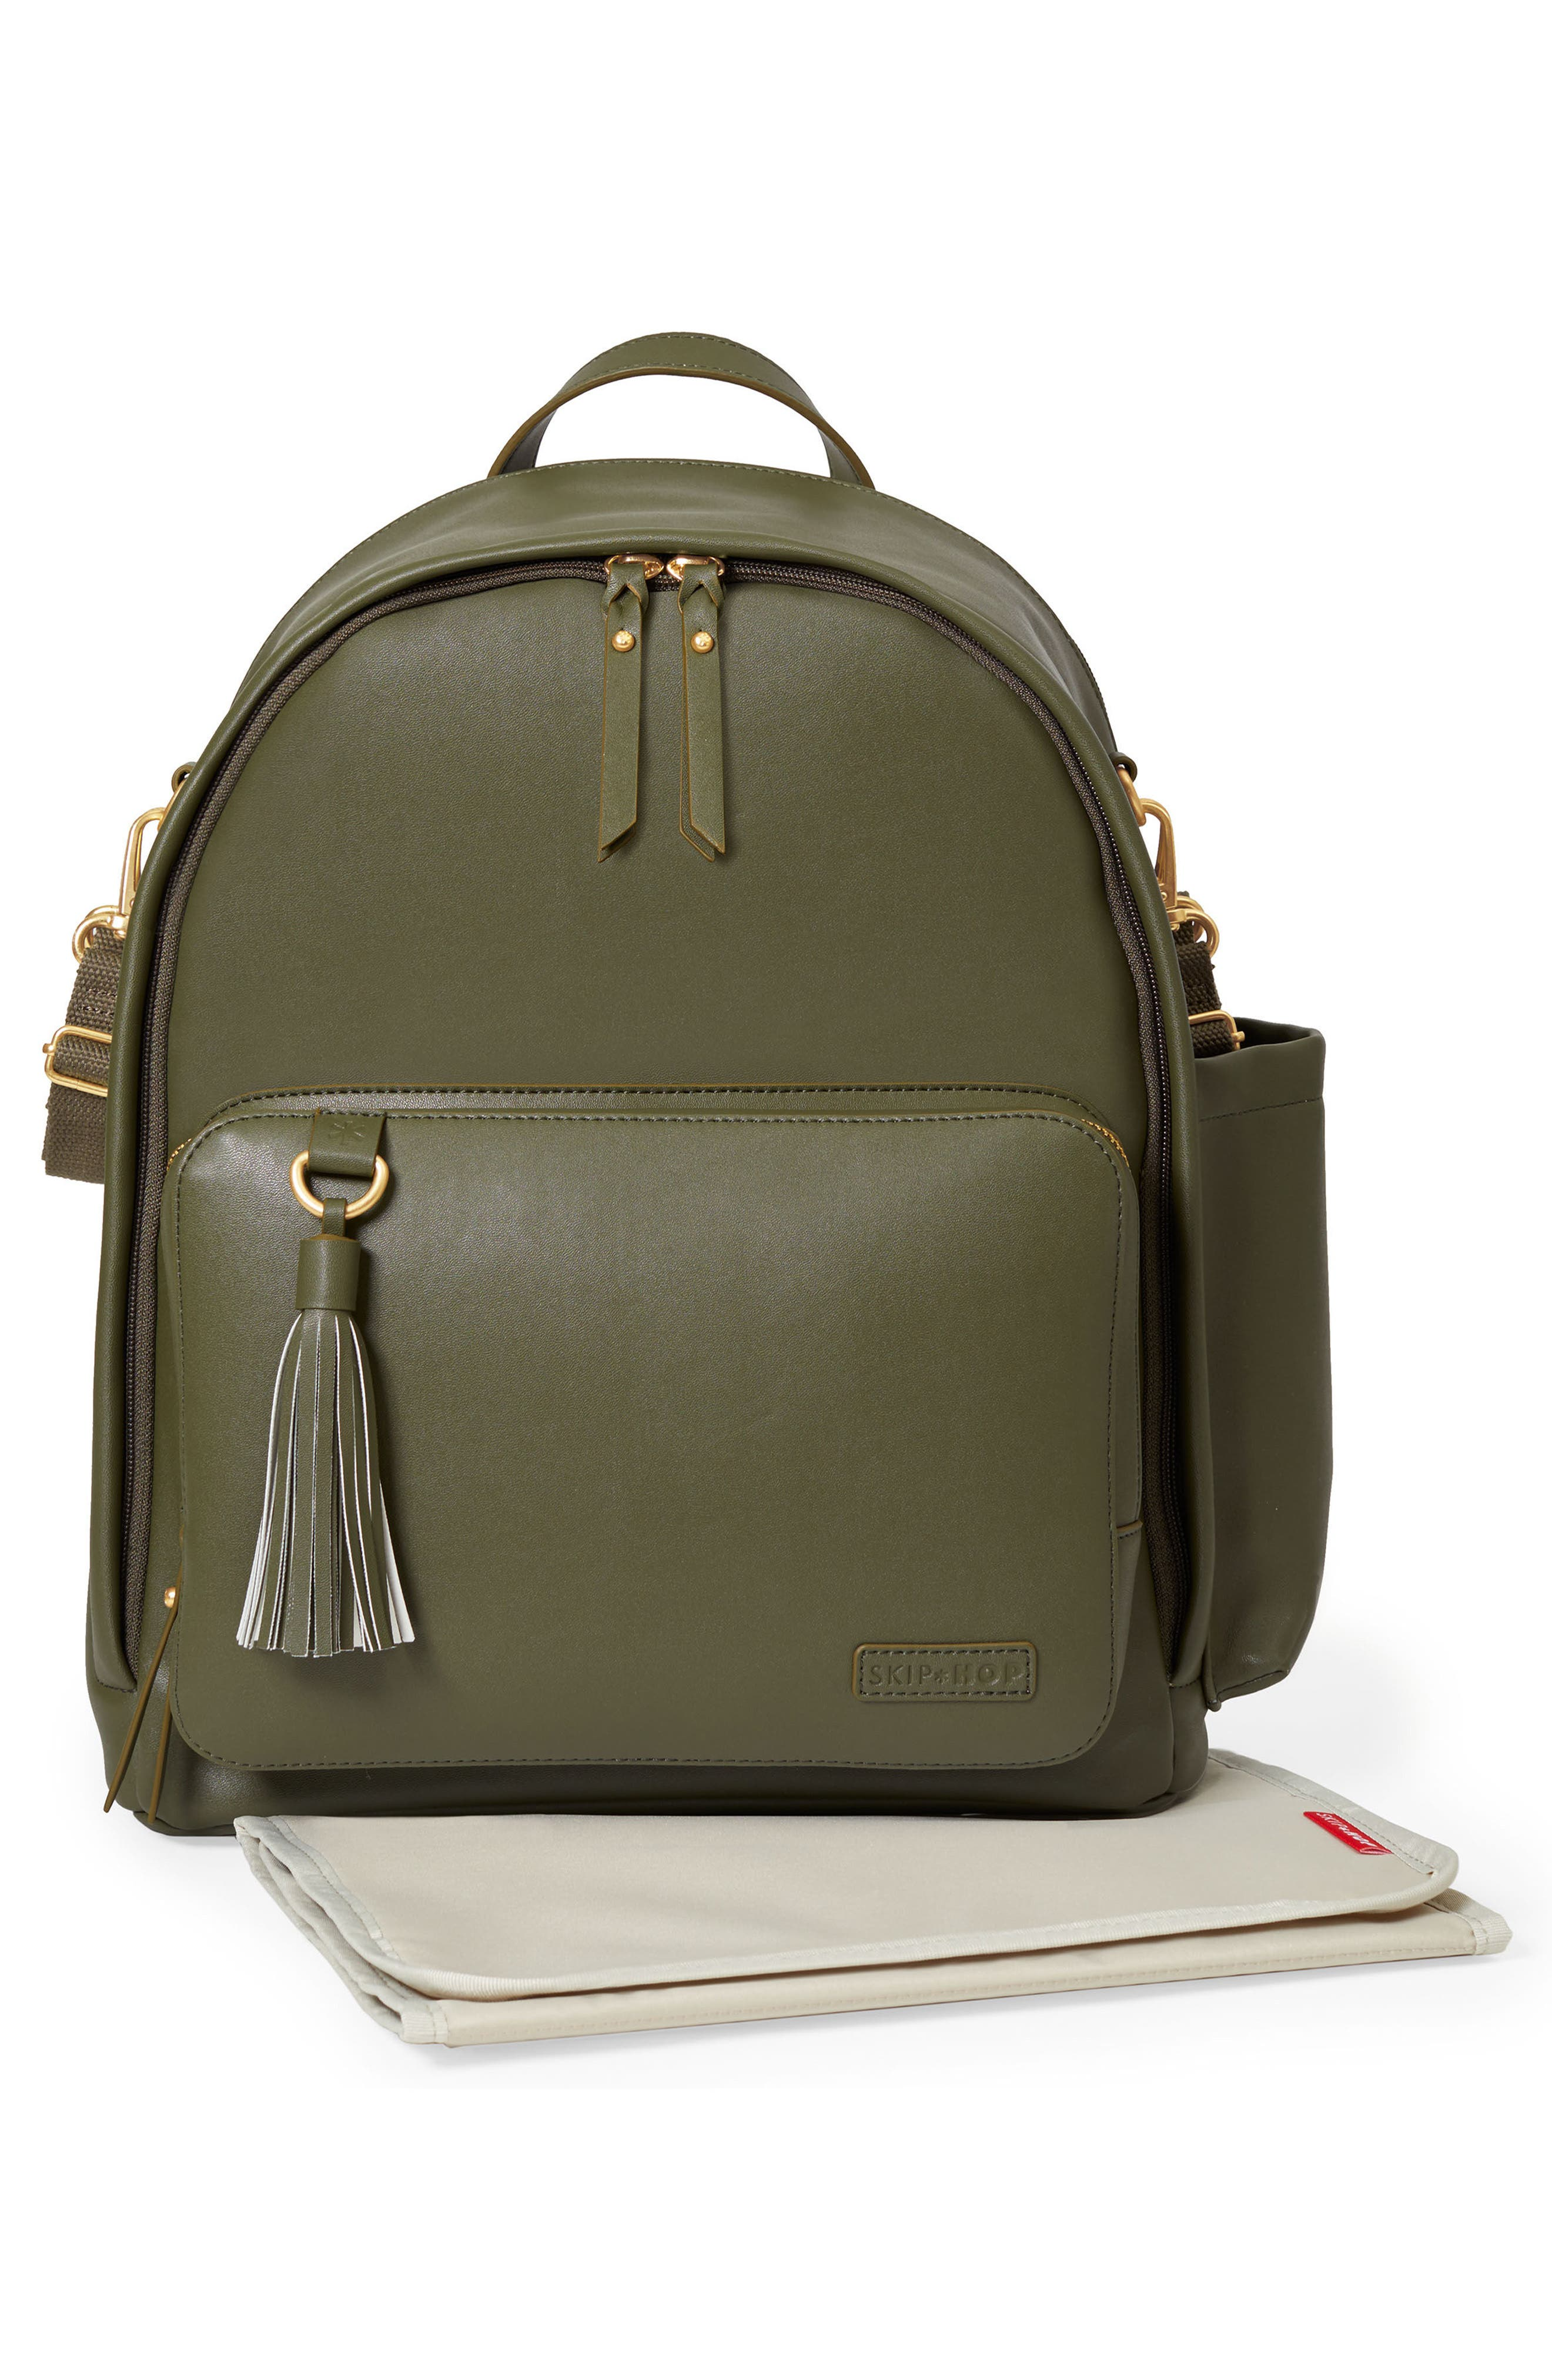 SKIP HOP,                             Greenwich Simply Chic Diaper Backpack,                             Alternate thumbnail 4, color,                             OLIVE